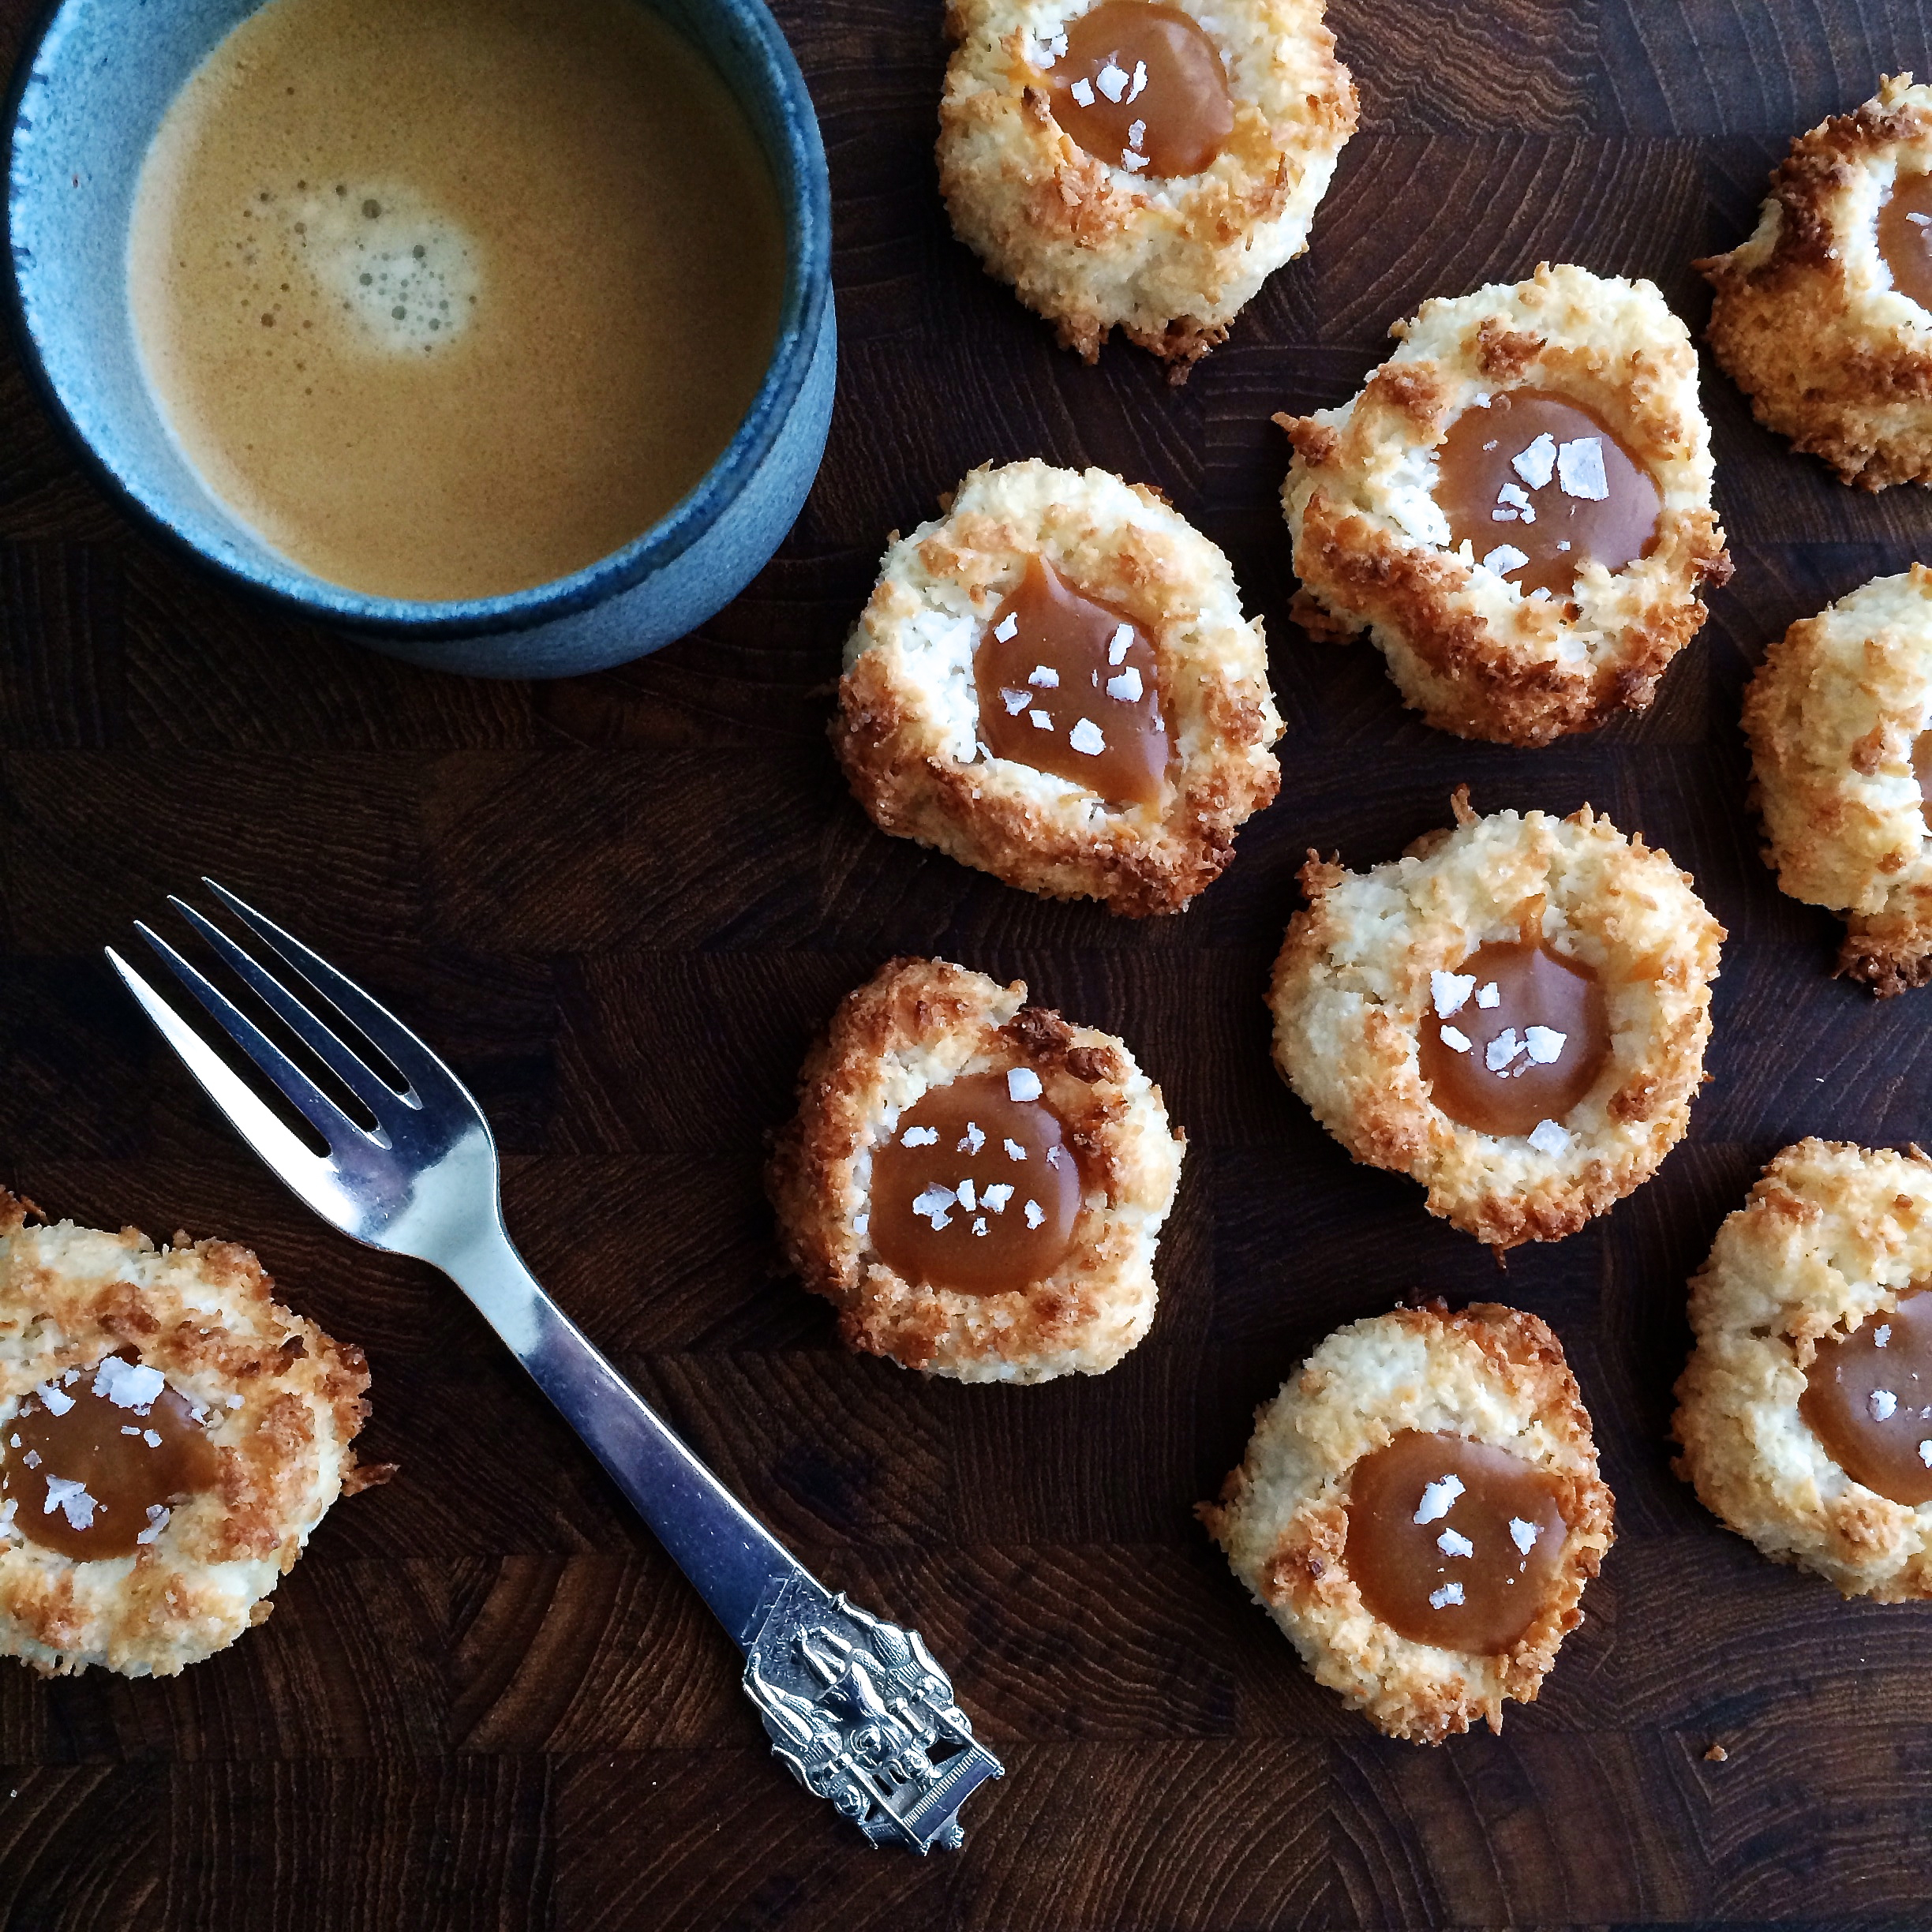 Coconut cakes with caramel